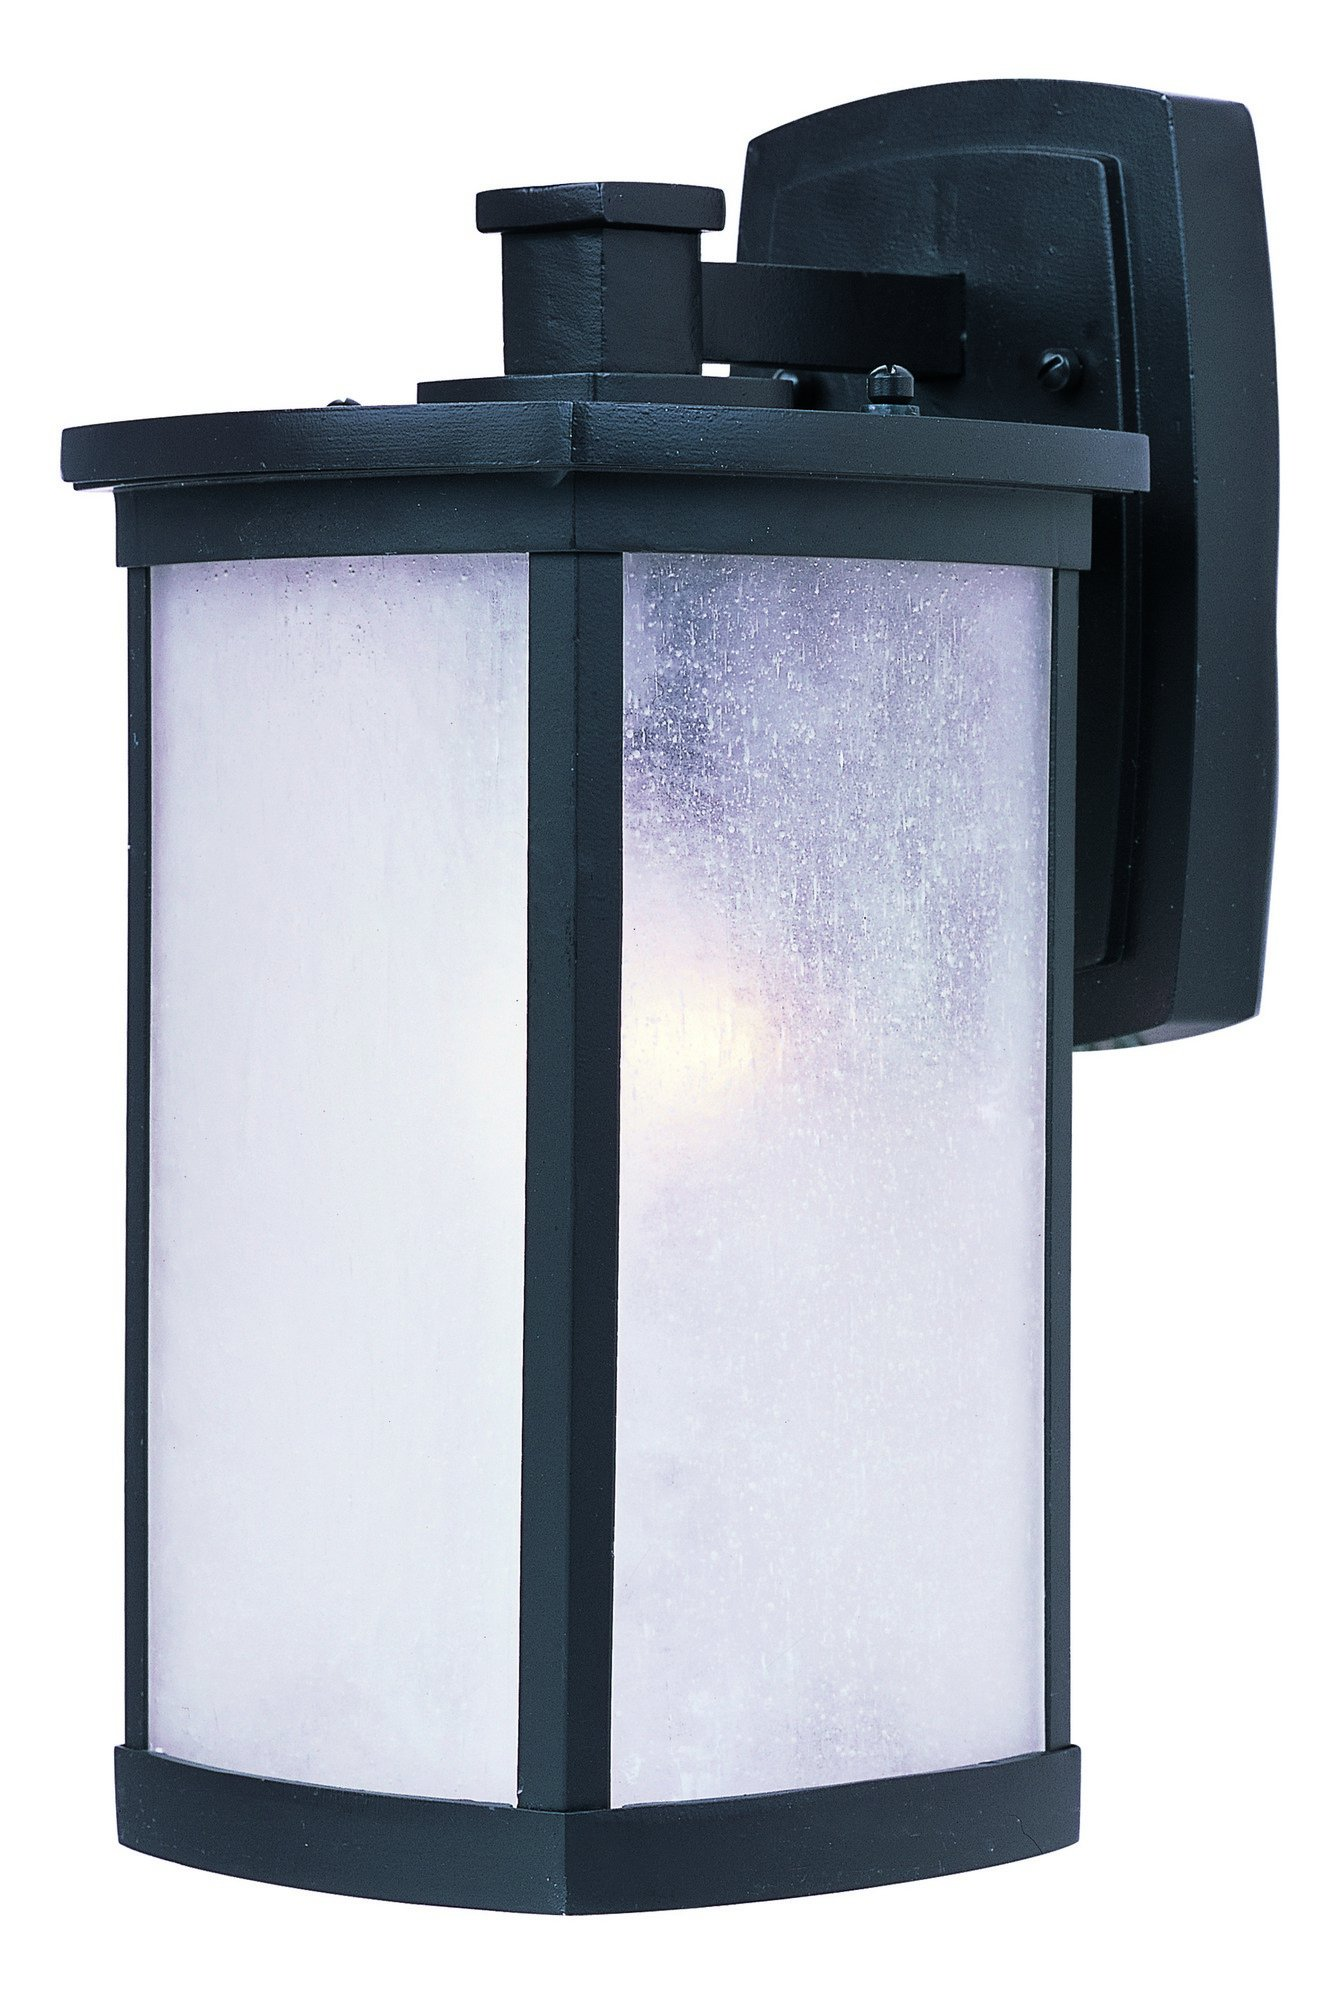 Maxim 3253FSBZ Terrace 1-Light Medium Outdoor Wall, Bronze Finish, Frosted Seedy Glass, MB Incandescent Incandescent Bulb , 12W Max., Wet Safety Rating, Standard Triac/Lutron or Leviton Dimmable, Shade Material, 840 Rated Lumens